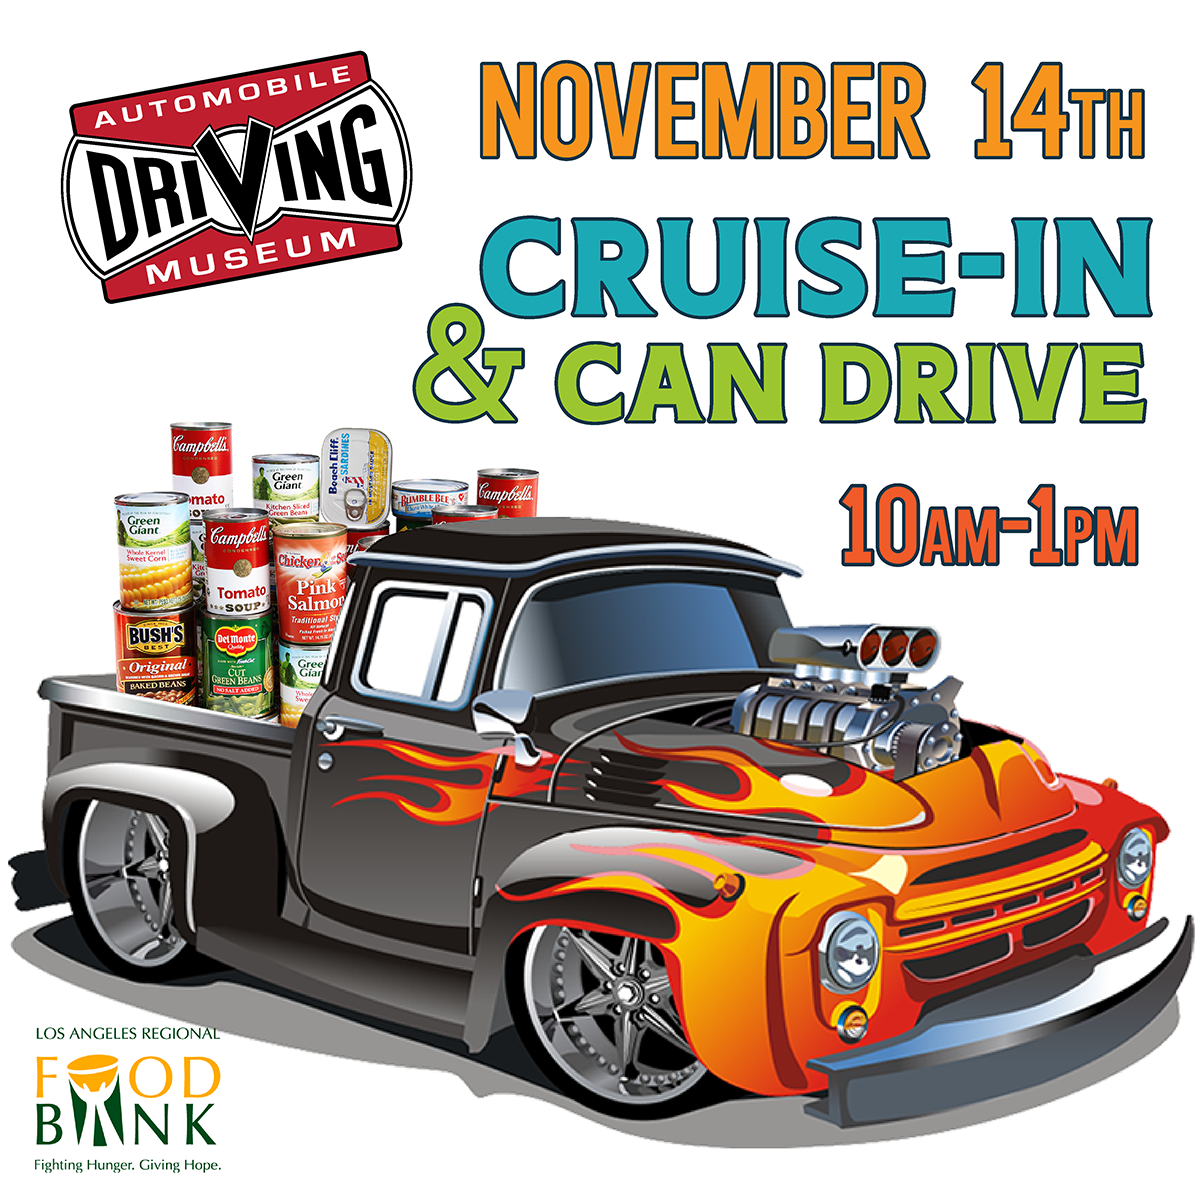 Nov 14 cruise in can drive v4-01